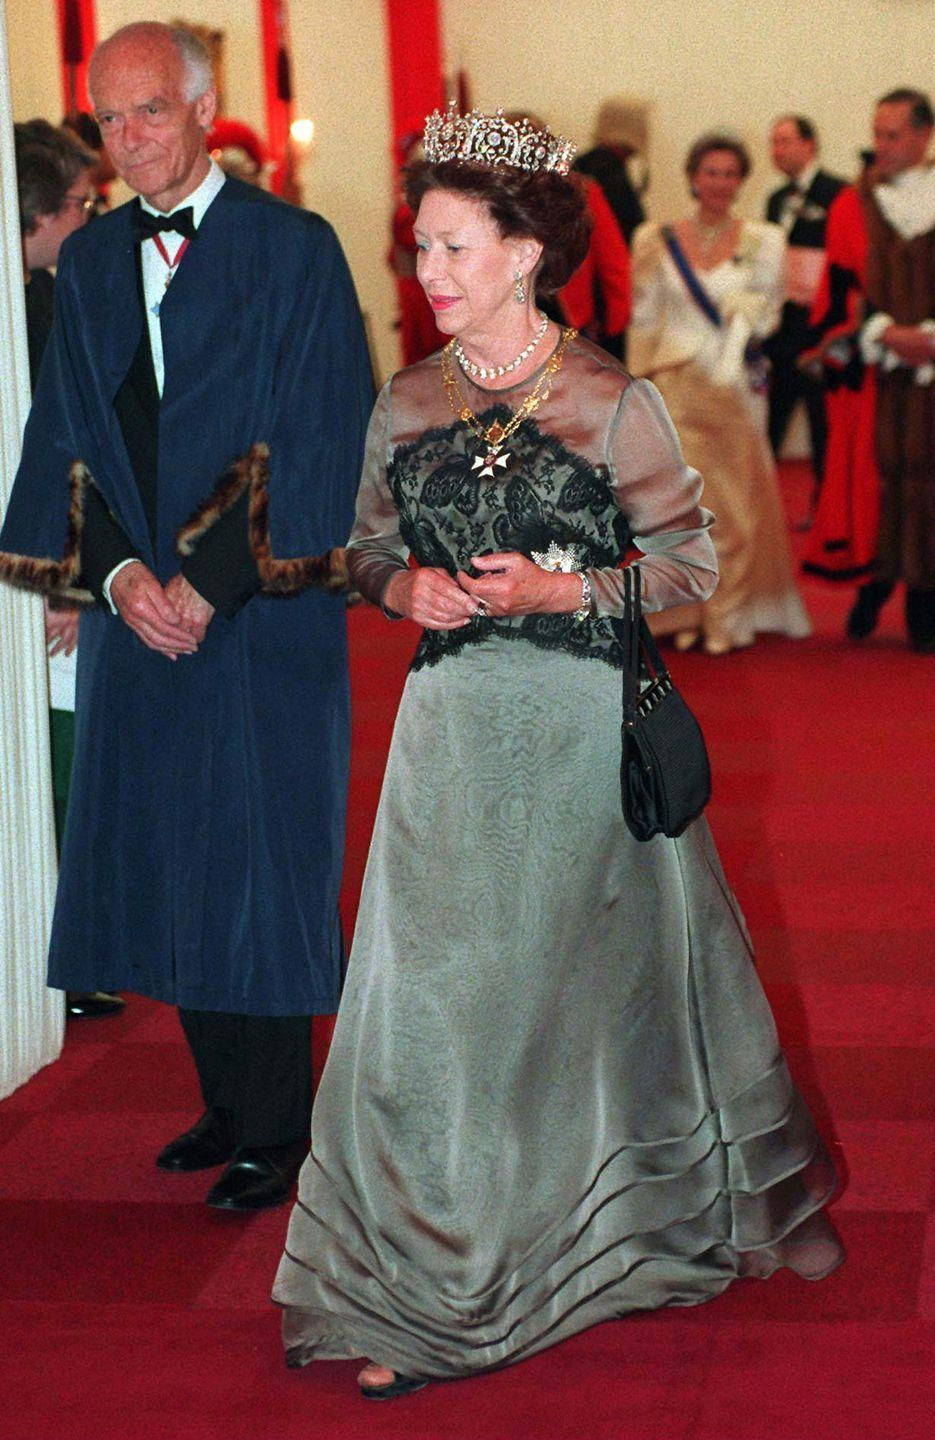 <p>In 1995, Princess Margaret wore a green long-sleeve evening gown finished with a hunter embroidered bodice to a state banquet in London.</p>